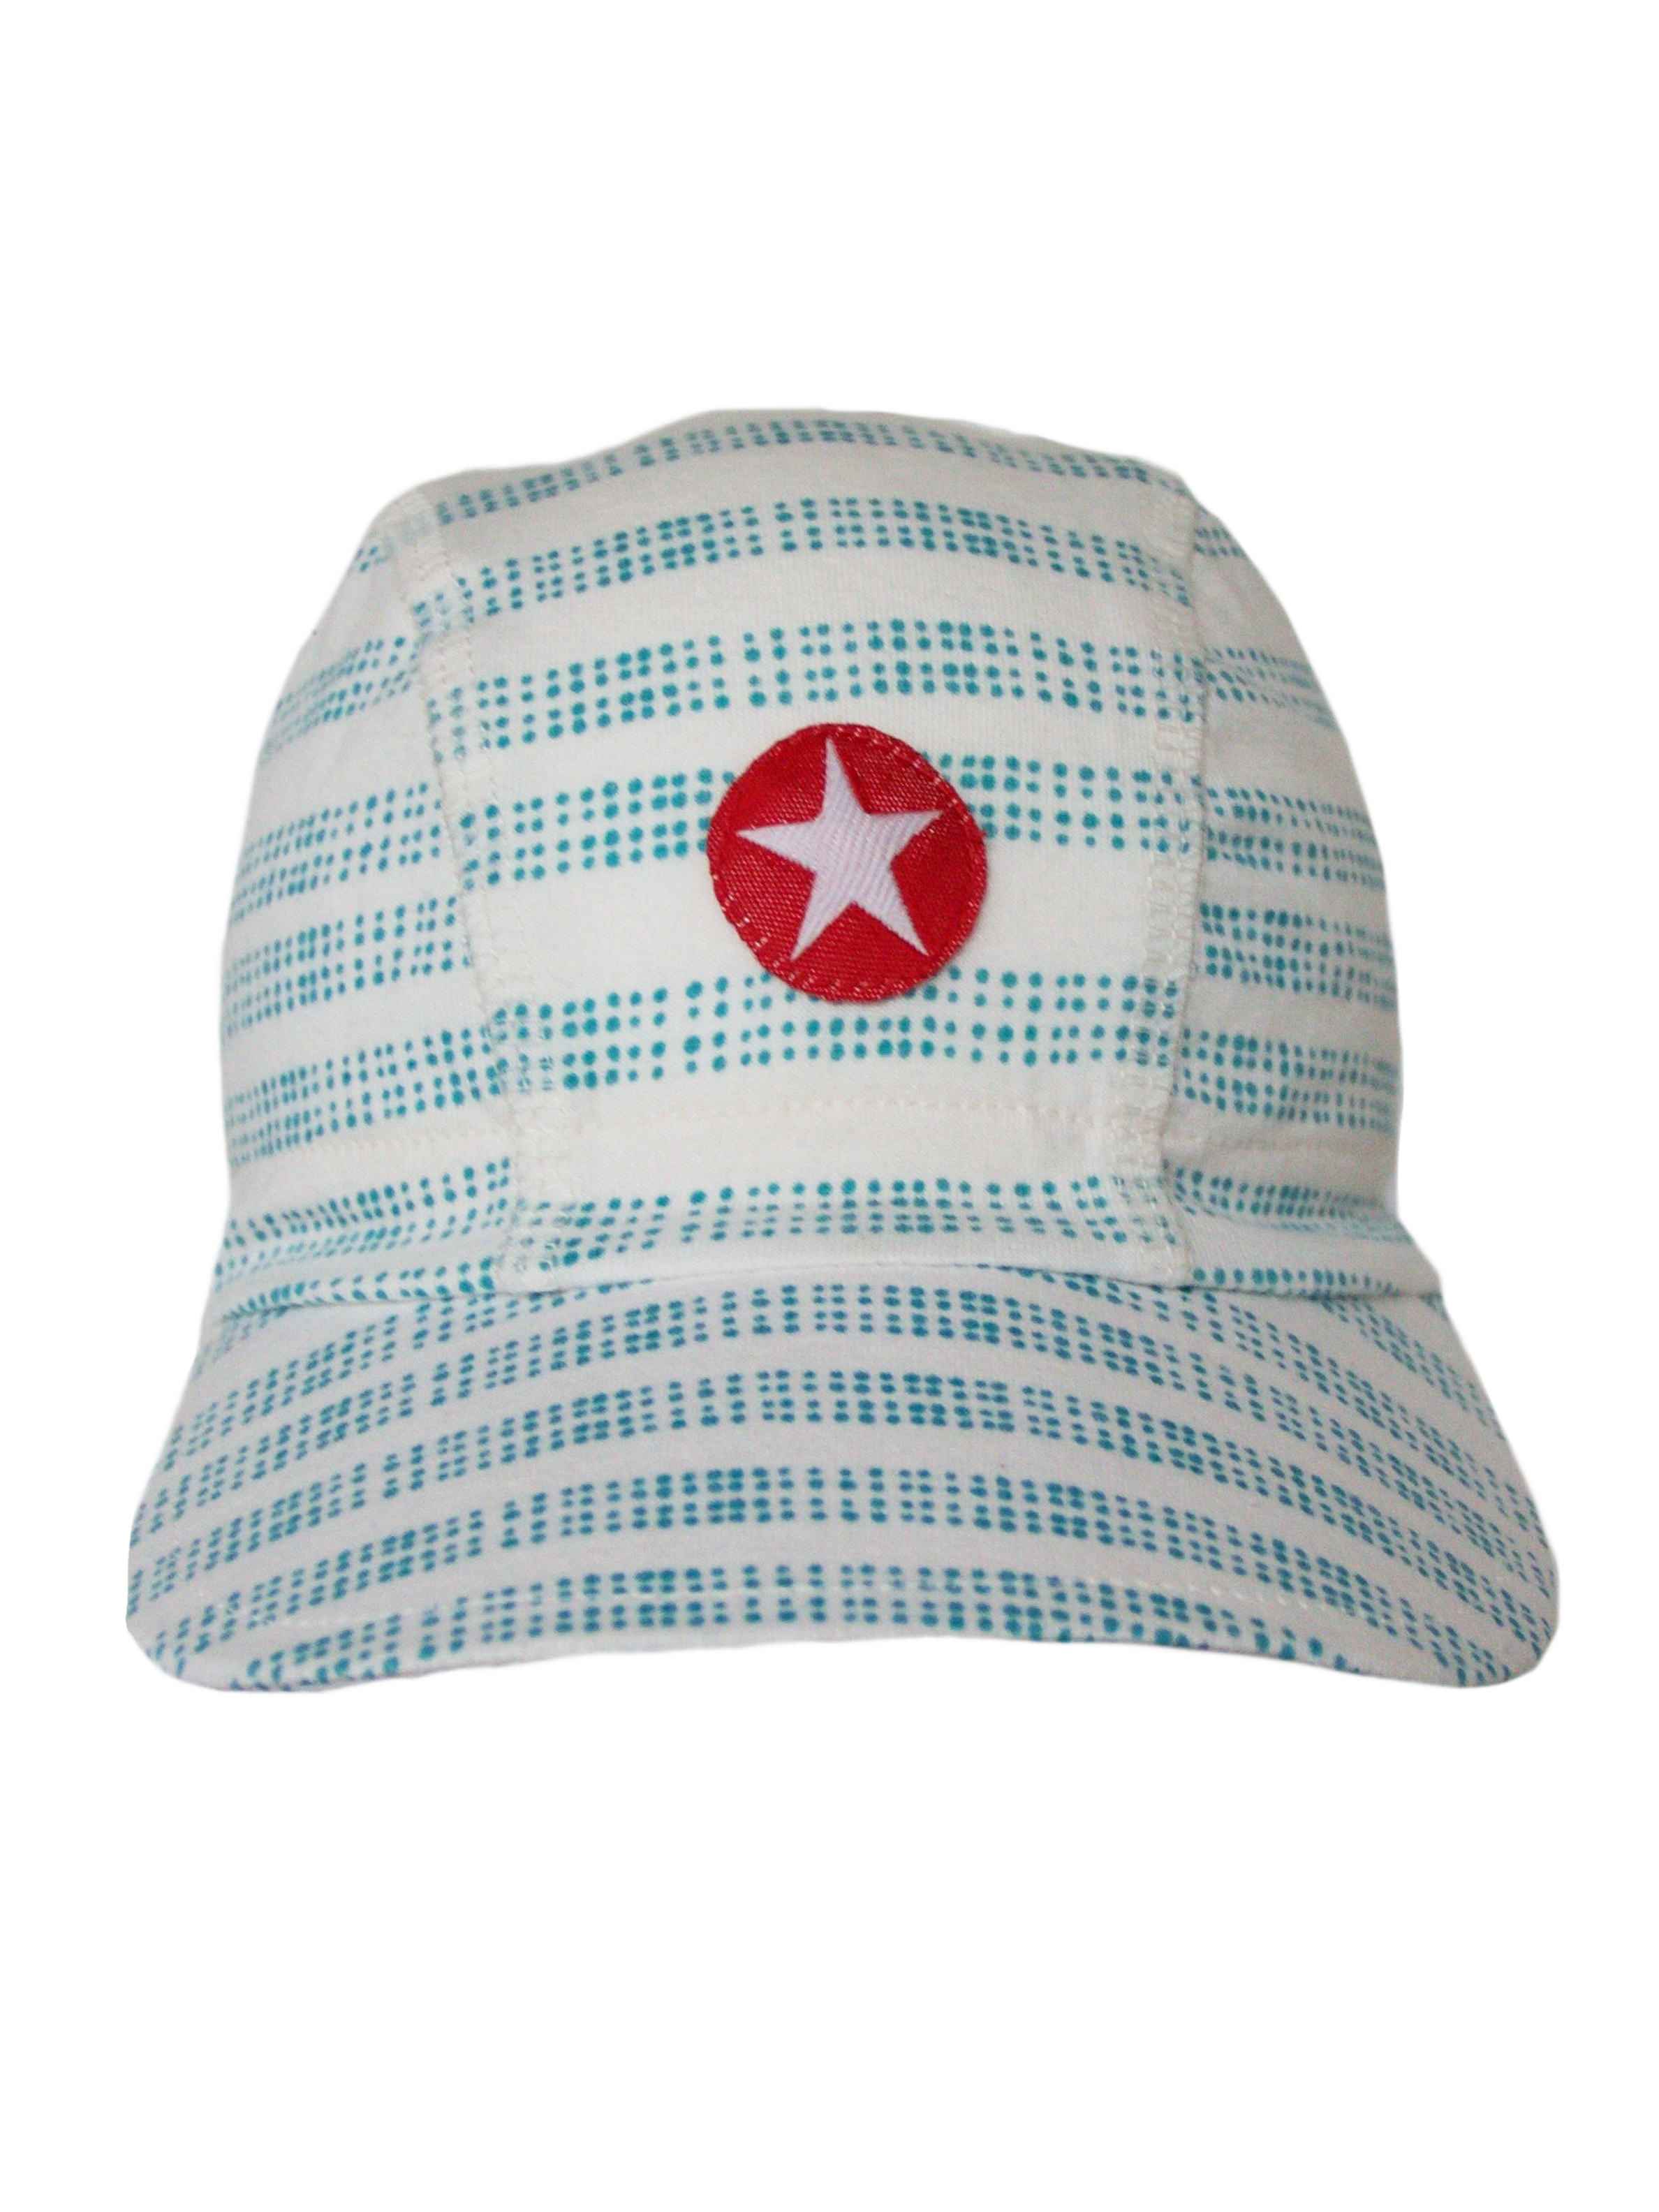 Hat cap jersey print stripe dots - white/blue